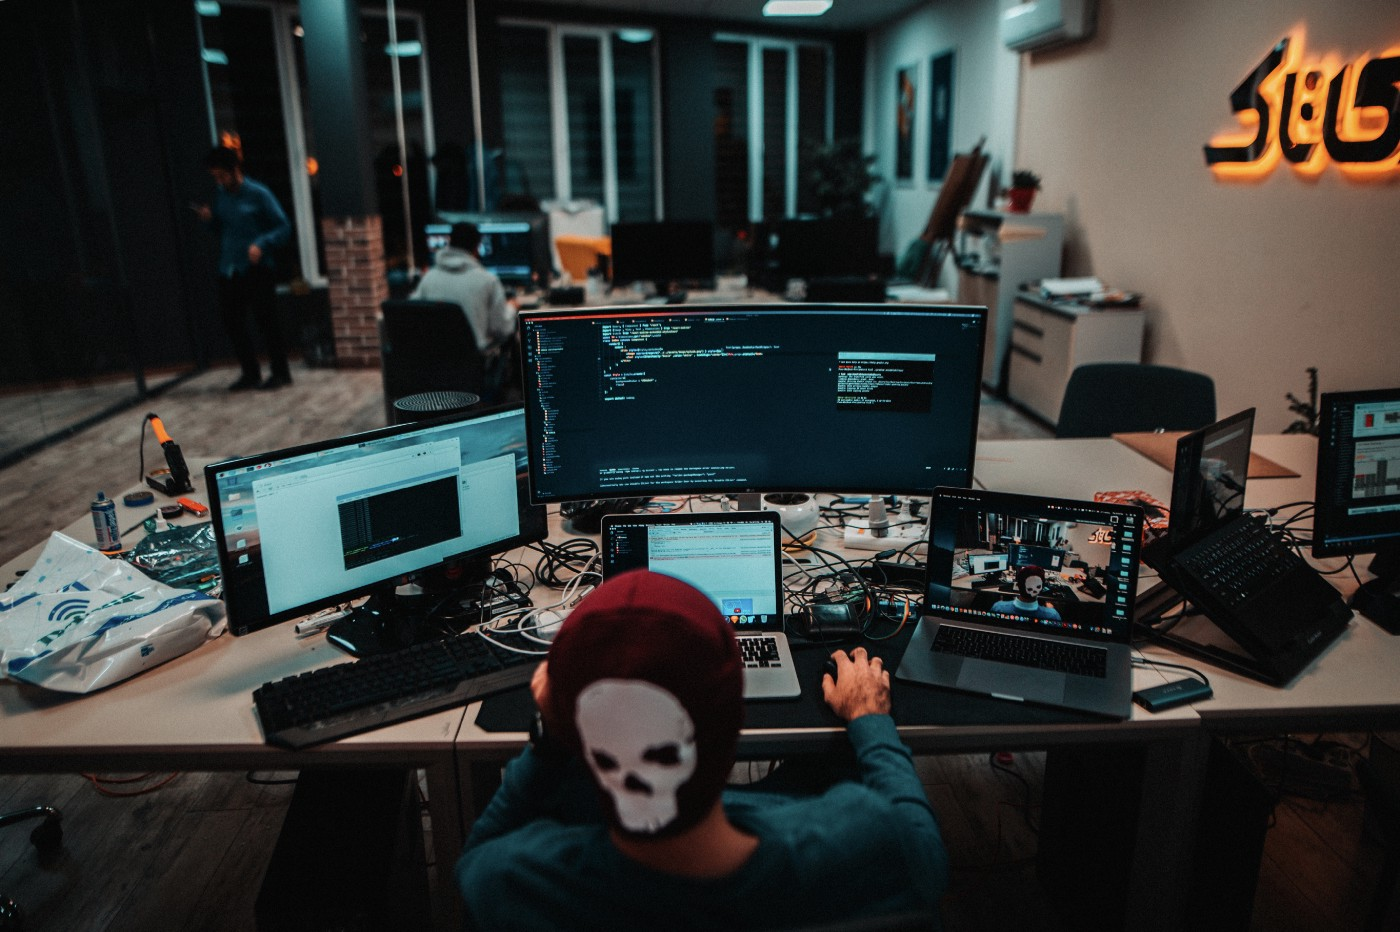 A Programmer coding at his workstation.